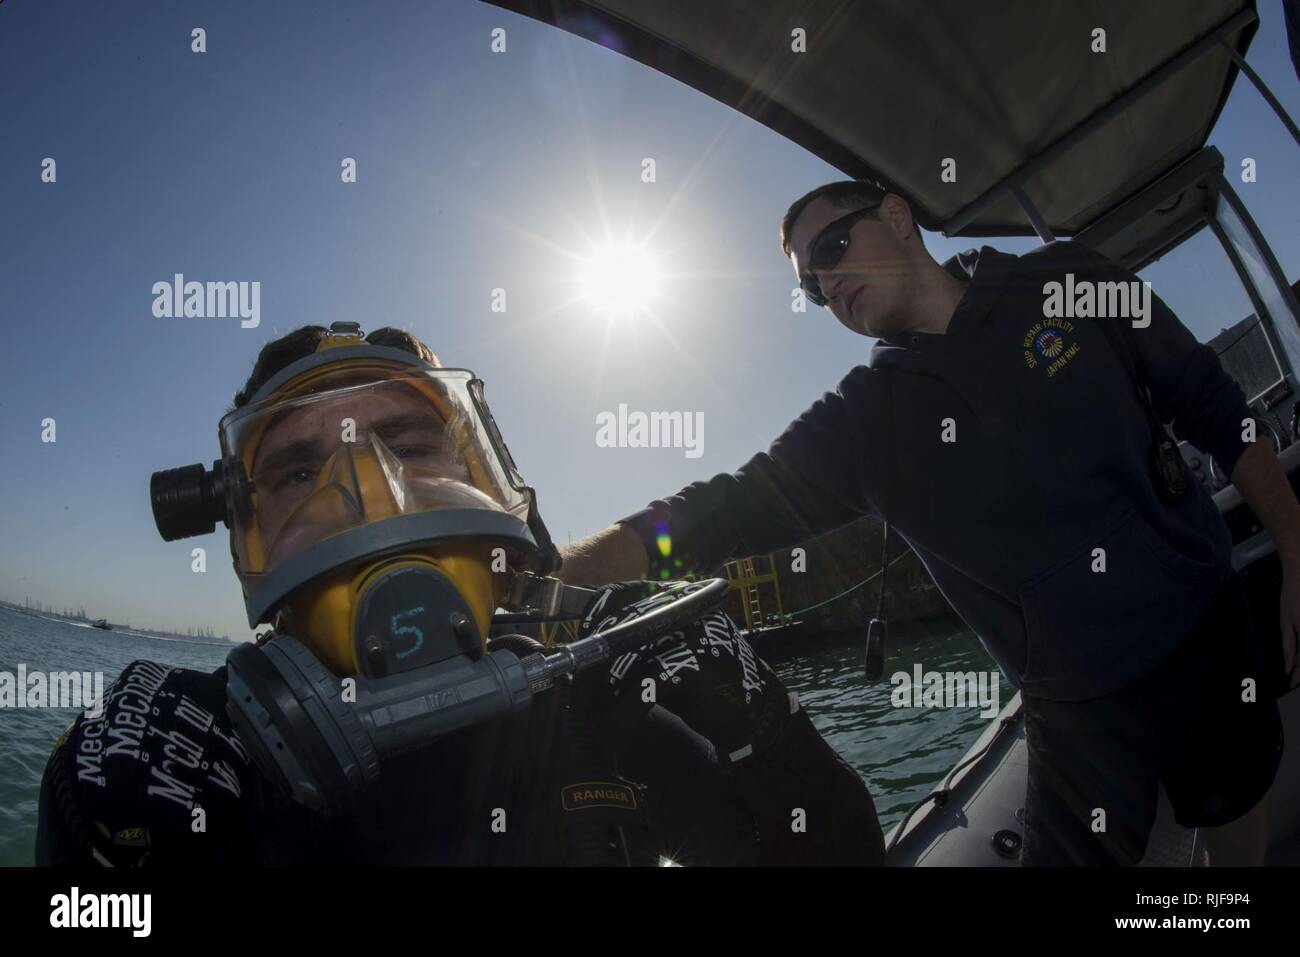 NAVAL SUPPORT ACTIVITY BAHRAIN (Jan. 6, 2016) Navy Diver 1st Class Scott Colvin conducts gear checks on Navy Diver 3rd Class Dakota Helm, assigned to Commander, Task Group (CTG) 56.1, prior to conducting an anti-terrorism force protection dive. CTG 56.1 conducts mine countermeasures, explosive ordnance disposal, salvage-diving and force protection operations throughout the U.S. 5th Fleet area of operations. - Stock Image